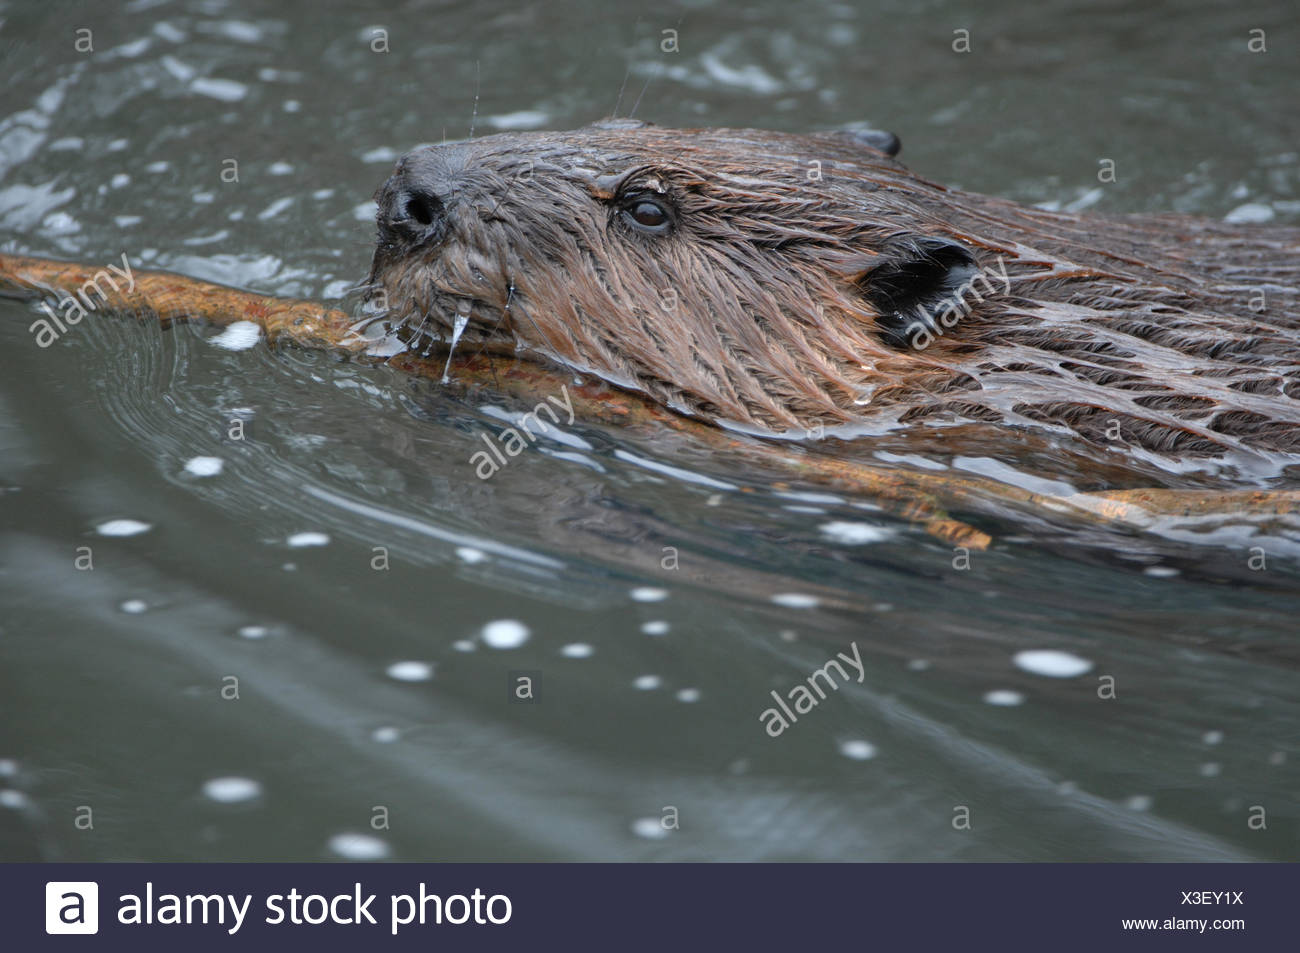 Beavers, rodents, Castor canadensis, water, animal, animals, Germany, Europe, - Stock Image